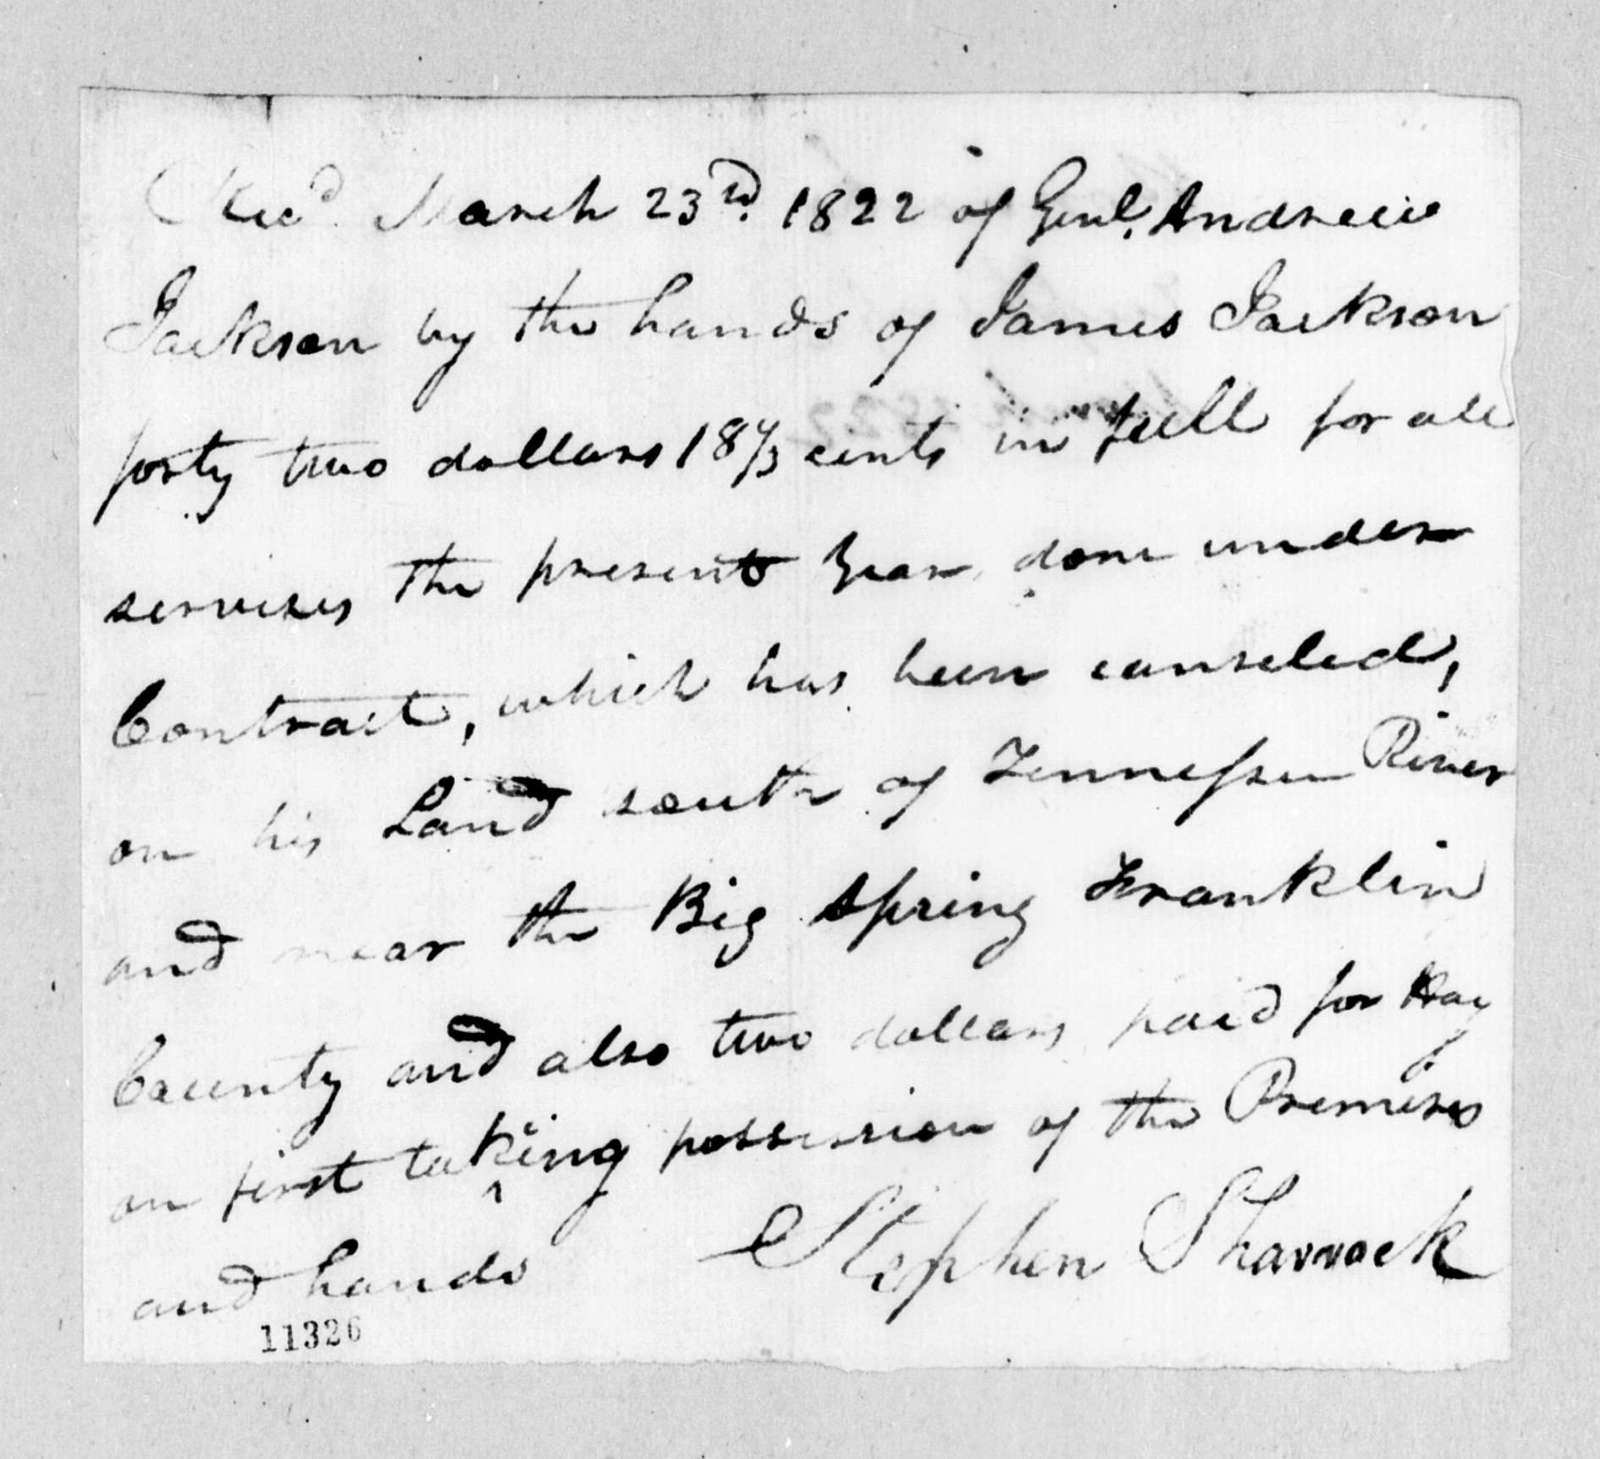 Stephen Sharrock to Andrew Jackson, March 23, 1822